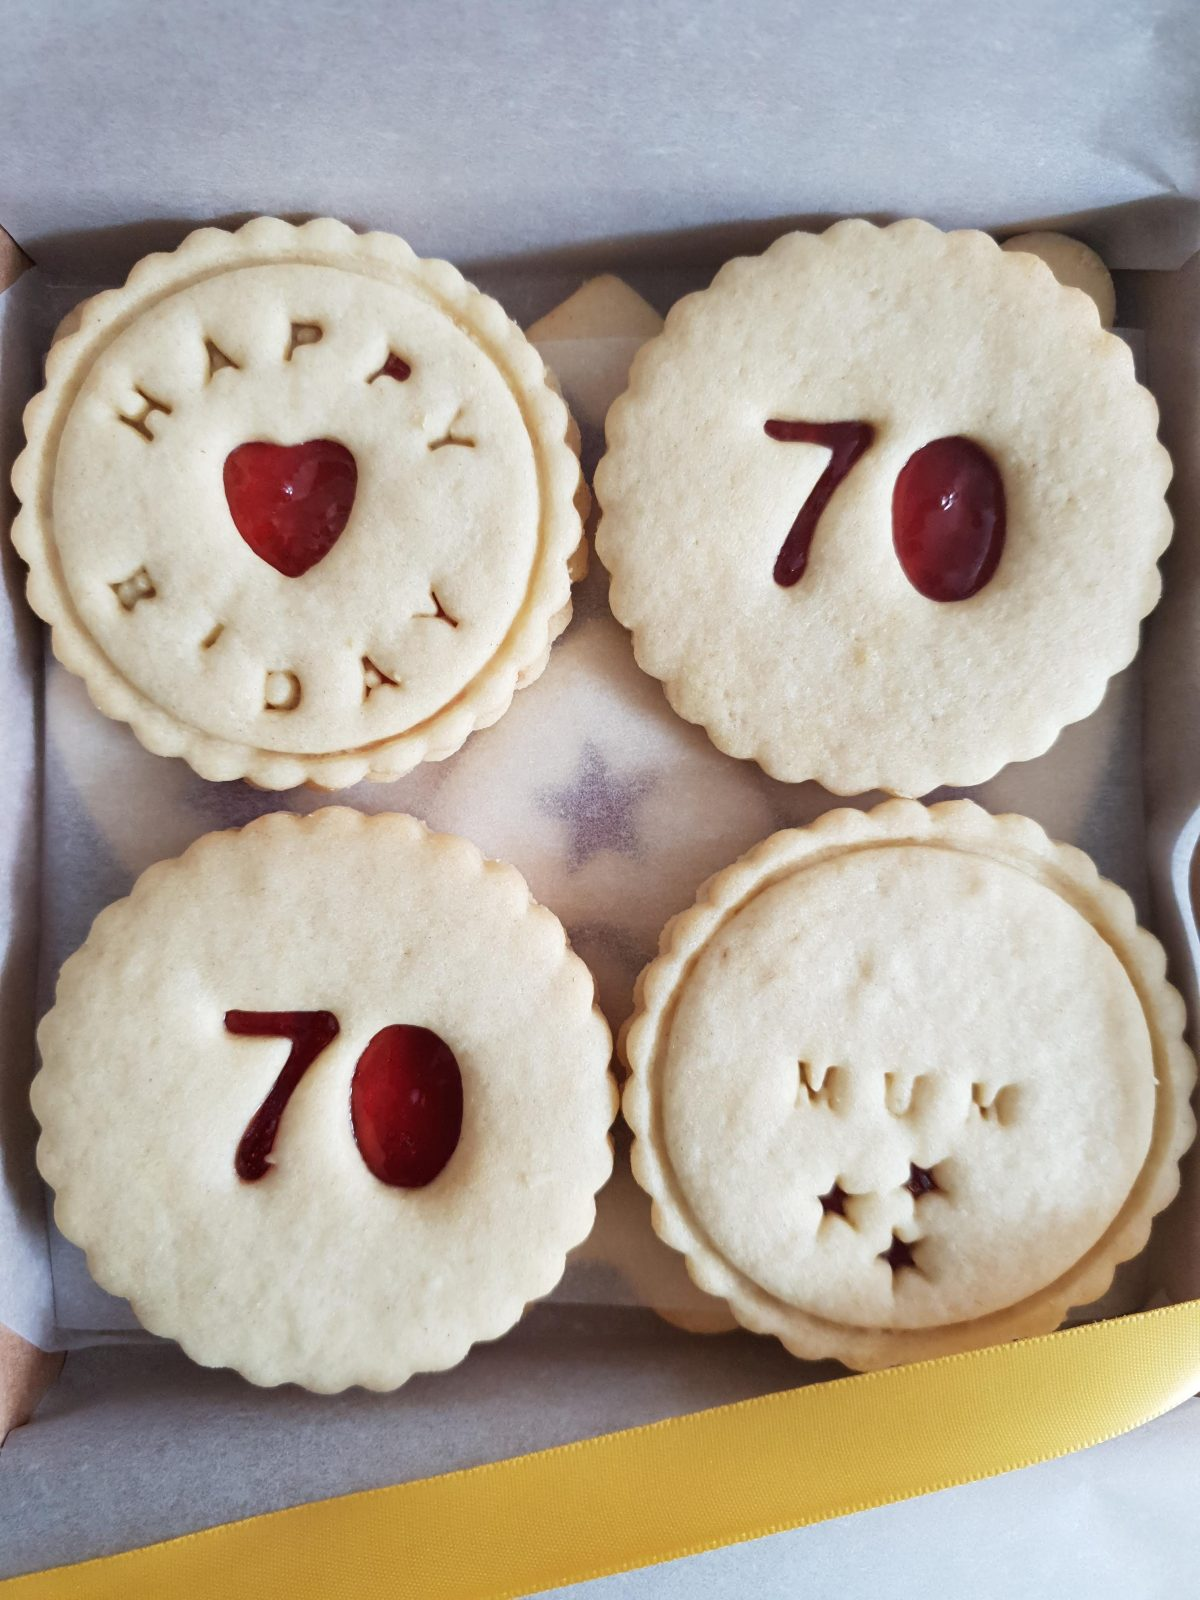 70th Birthday biscuits